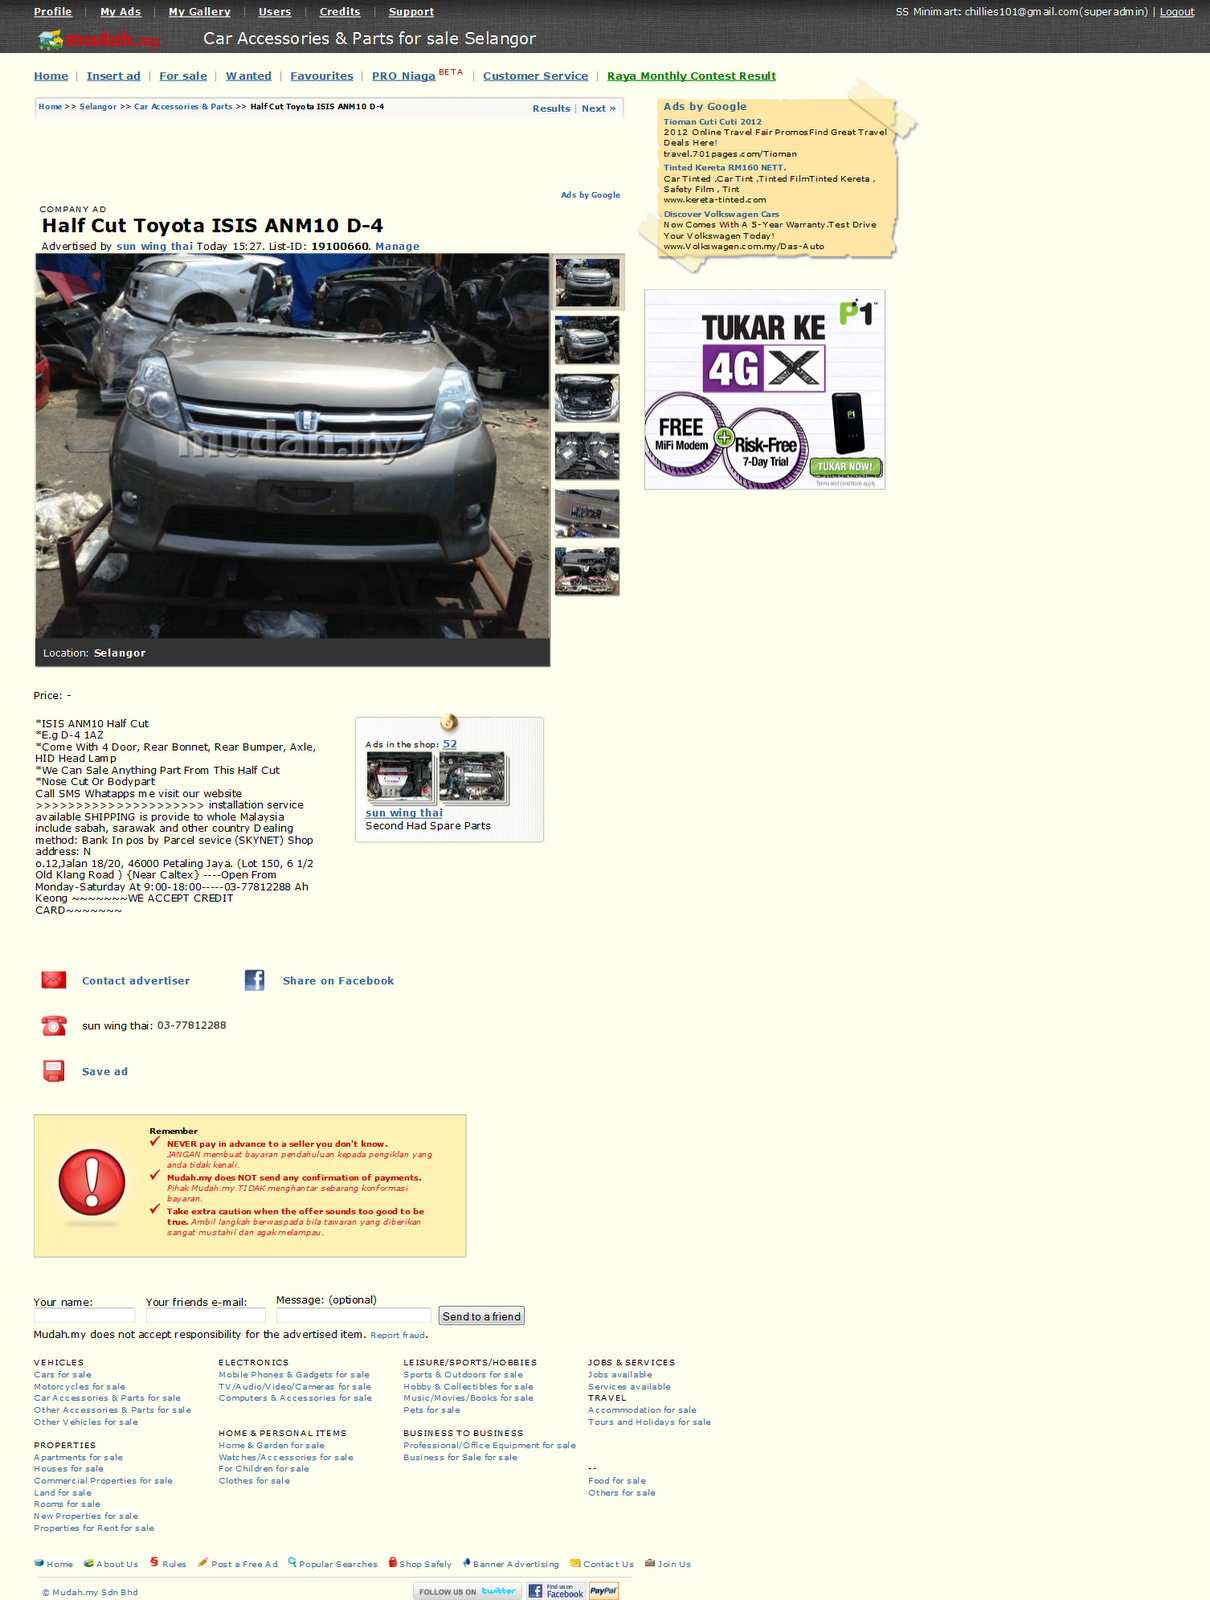 Anm Car Accessories Parts For Sale Selangor Mudahmy